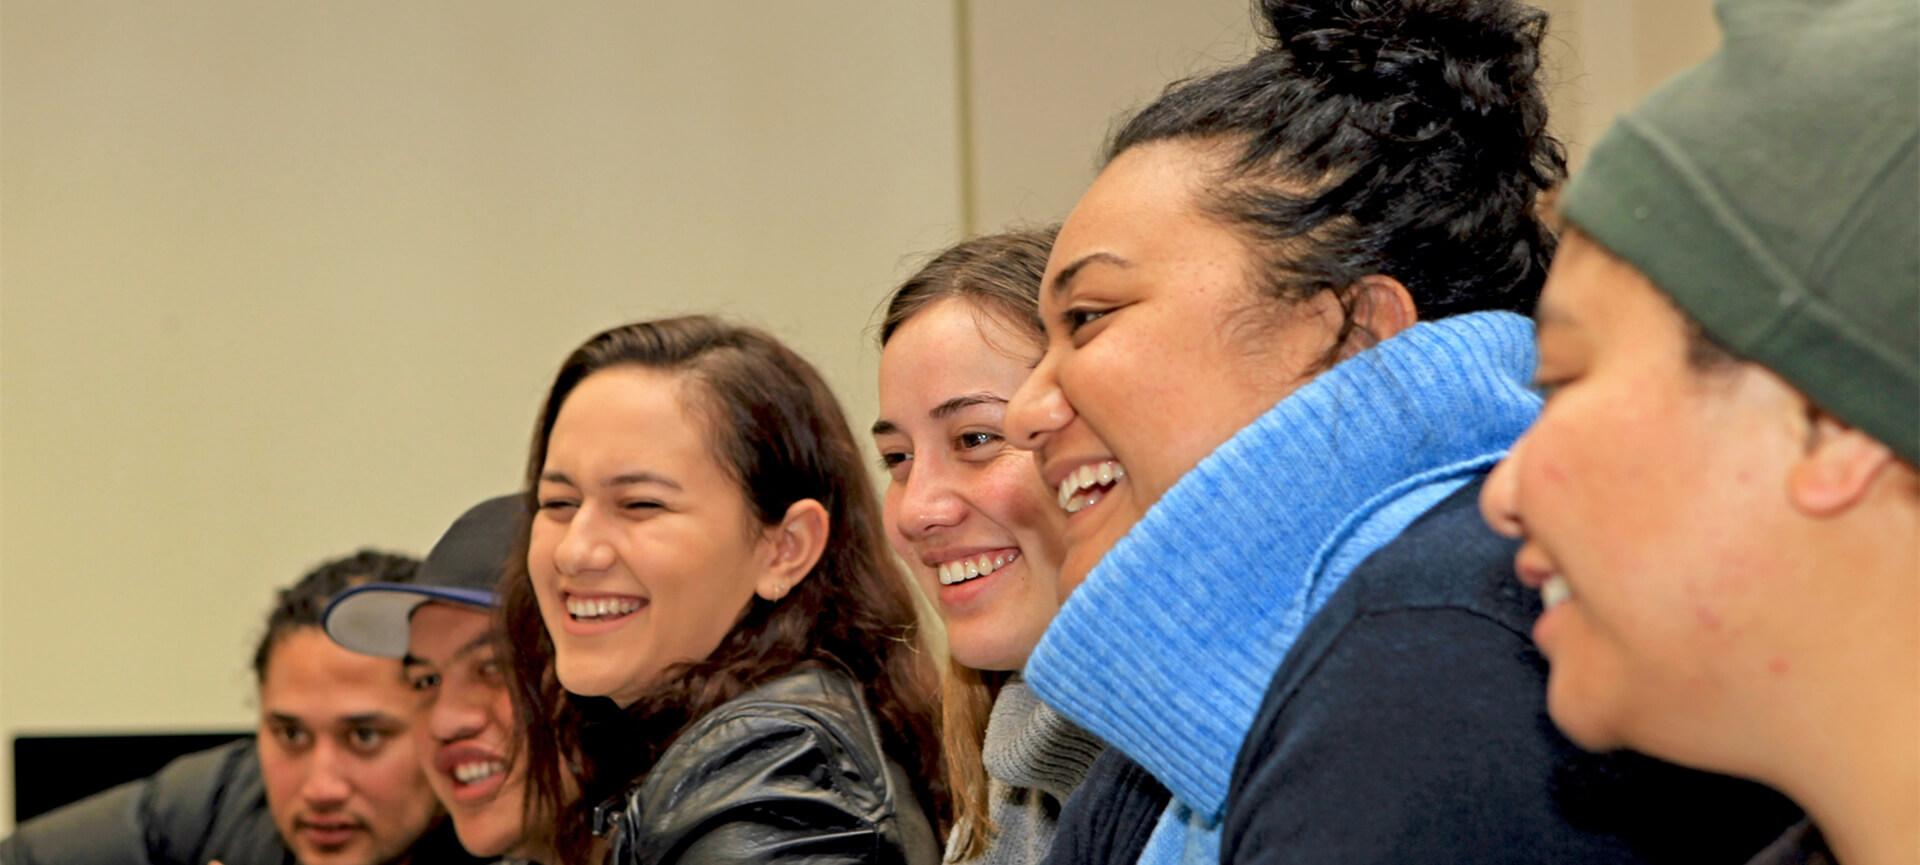 Group of students smiling